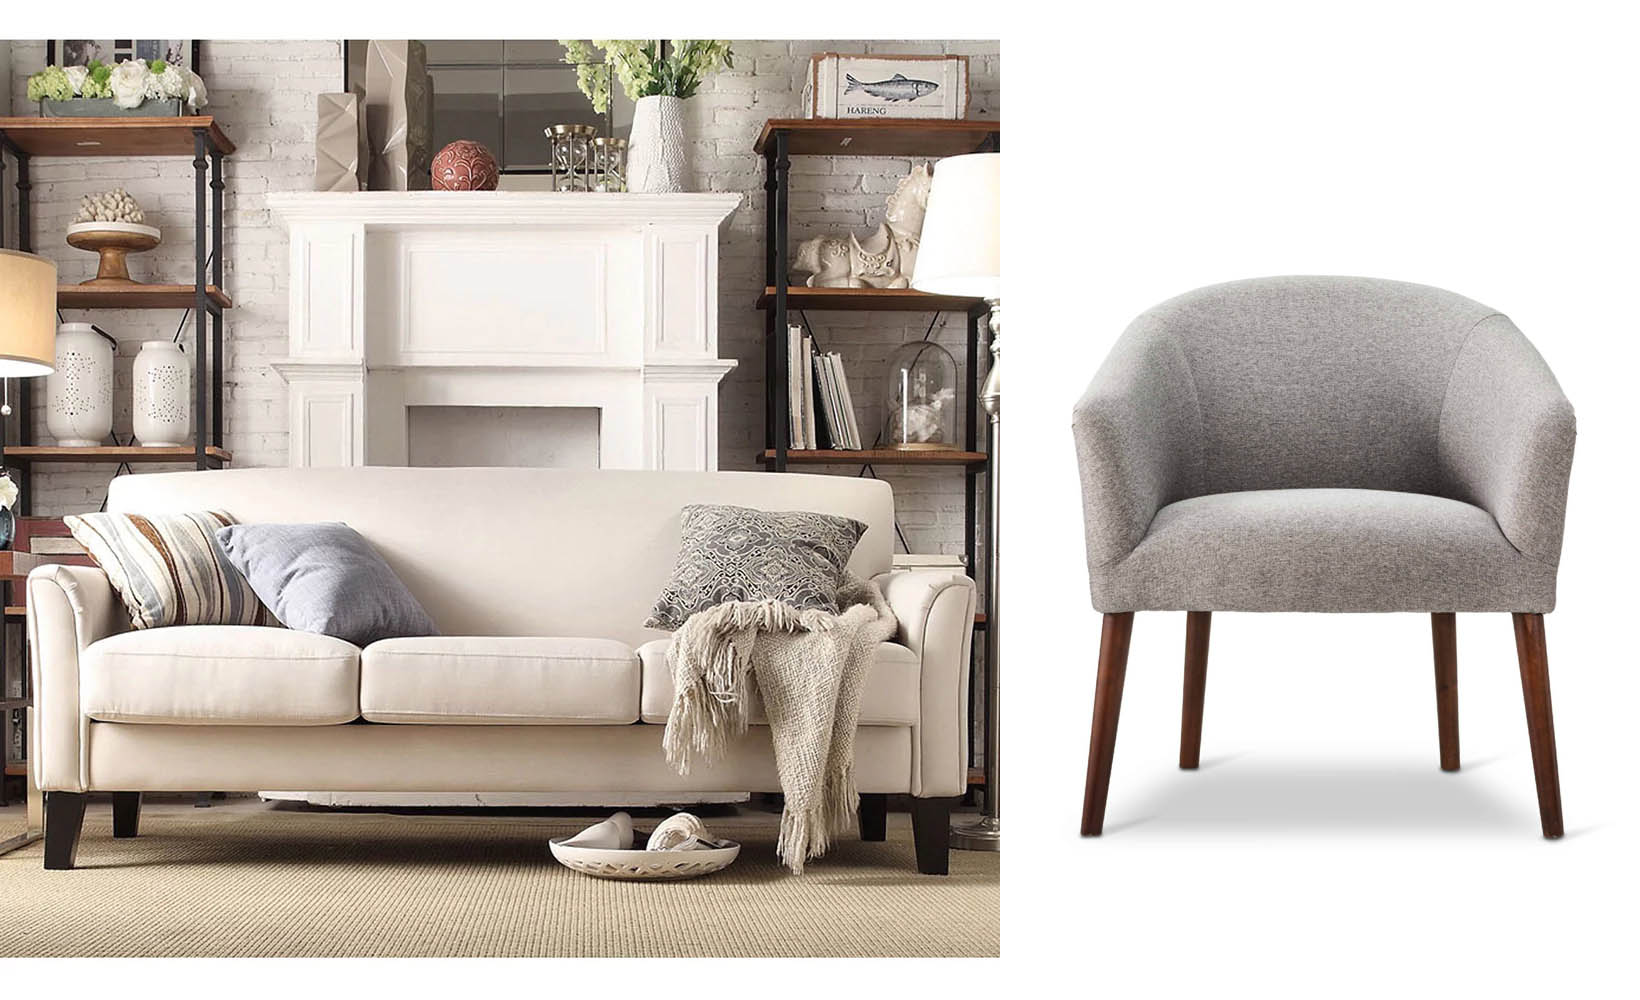 It May Seem Like New Furniture Is A Large Investment, But You Can Get This  Sofa At $370 At Overstock And This Chair For $180 At Target.com.